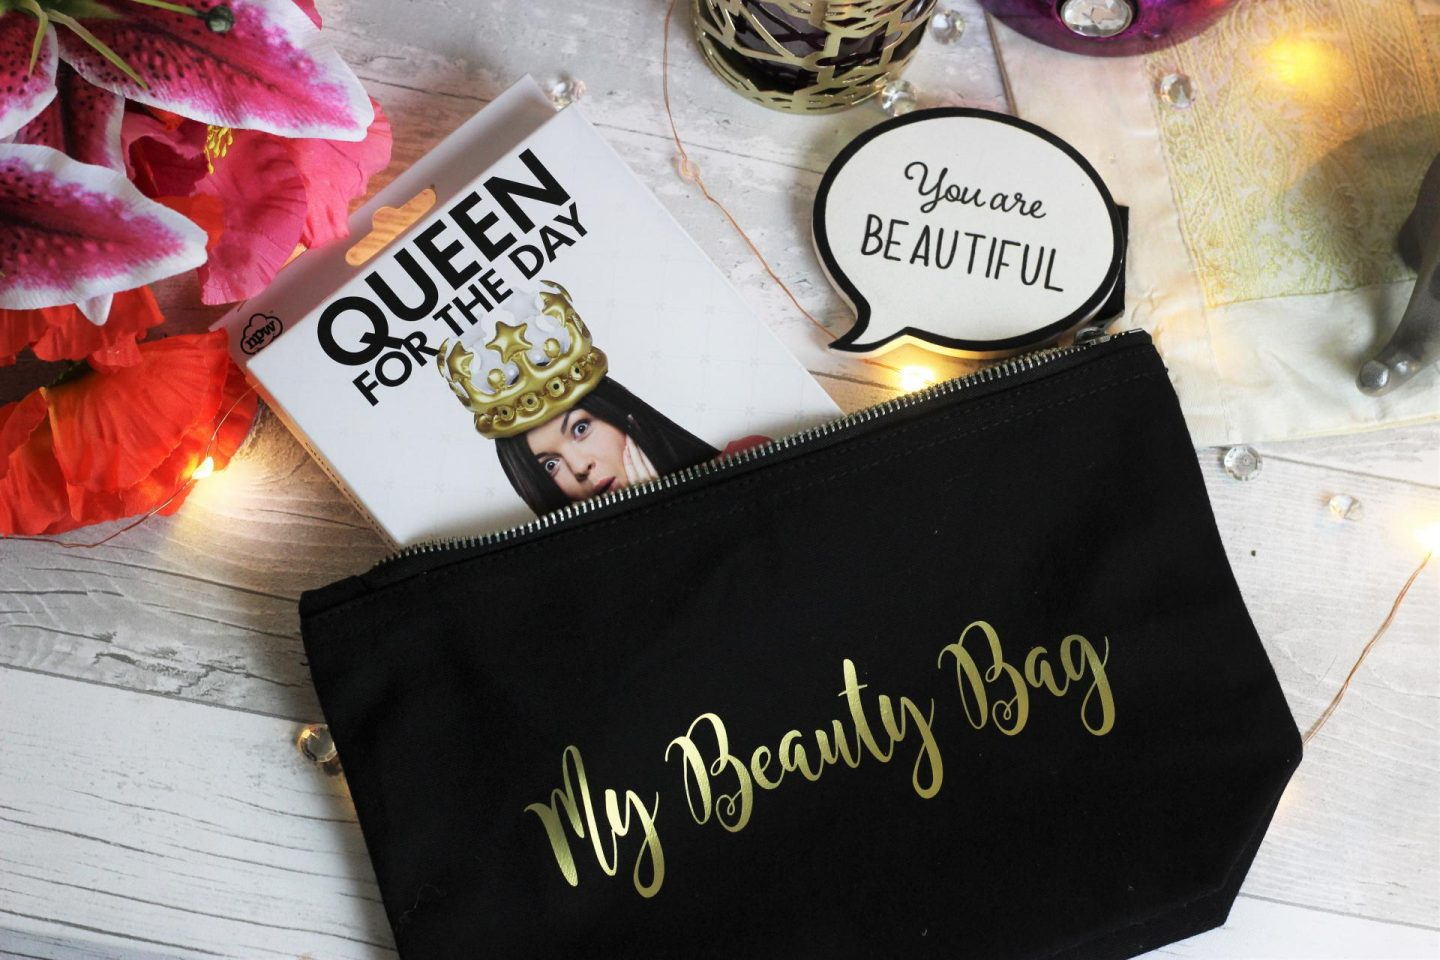 Ideal World Beauty Day